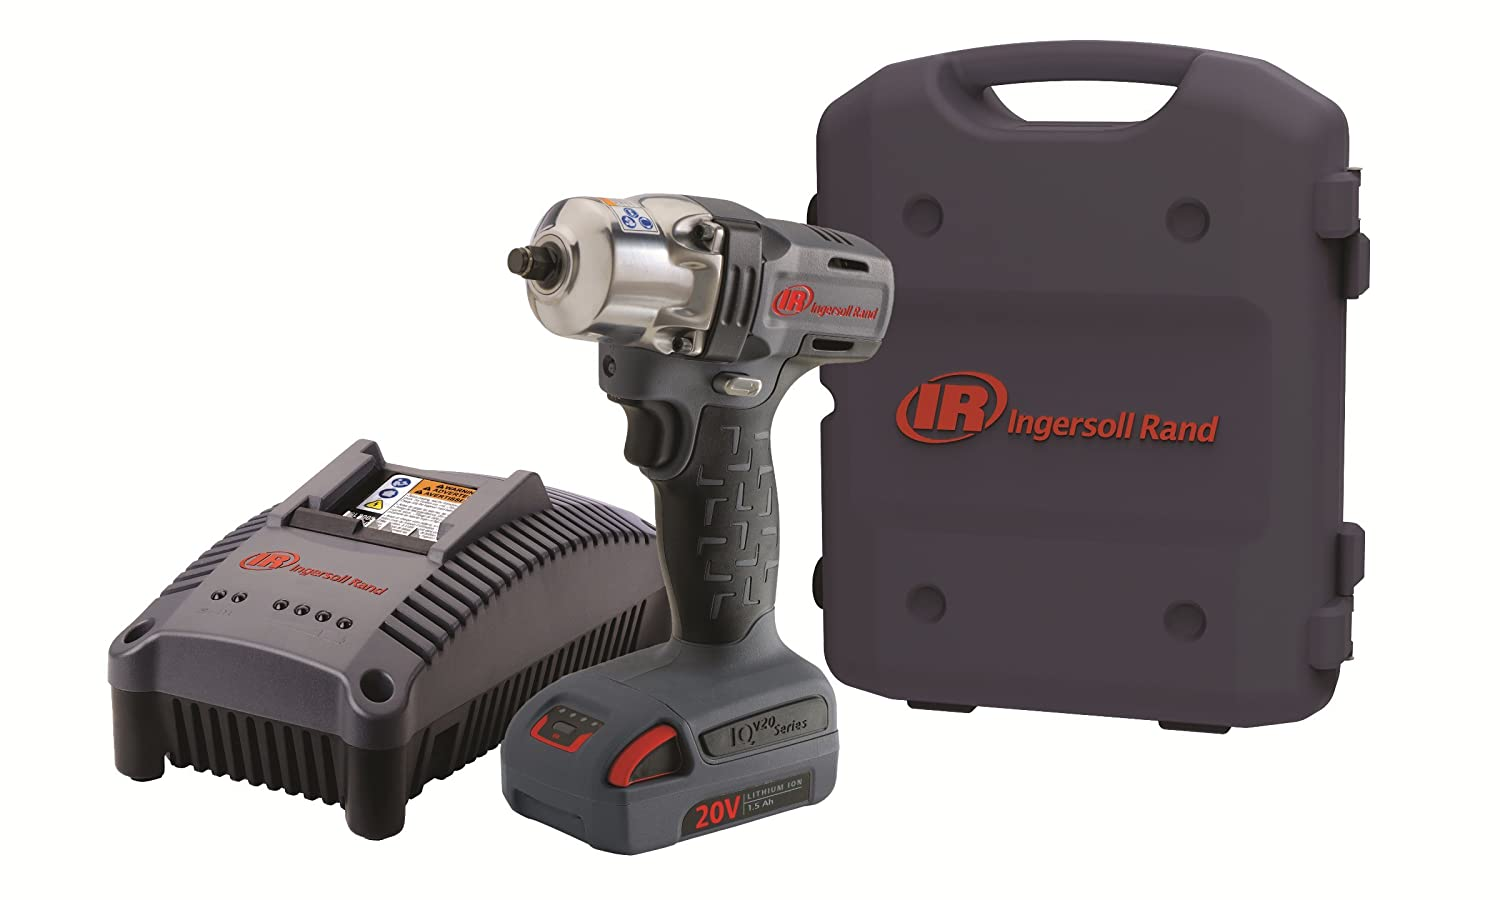 Ingersoll Rand W5130-K1 3 8-Inch Mid-Torque Impactool Kit with Charger, Li-Ion Battery and Case